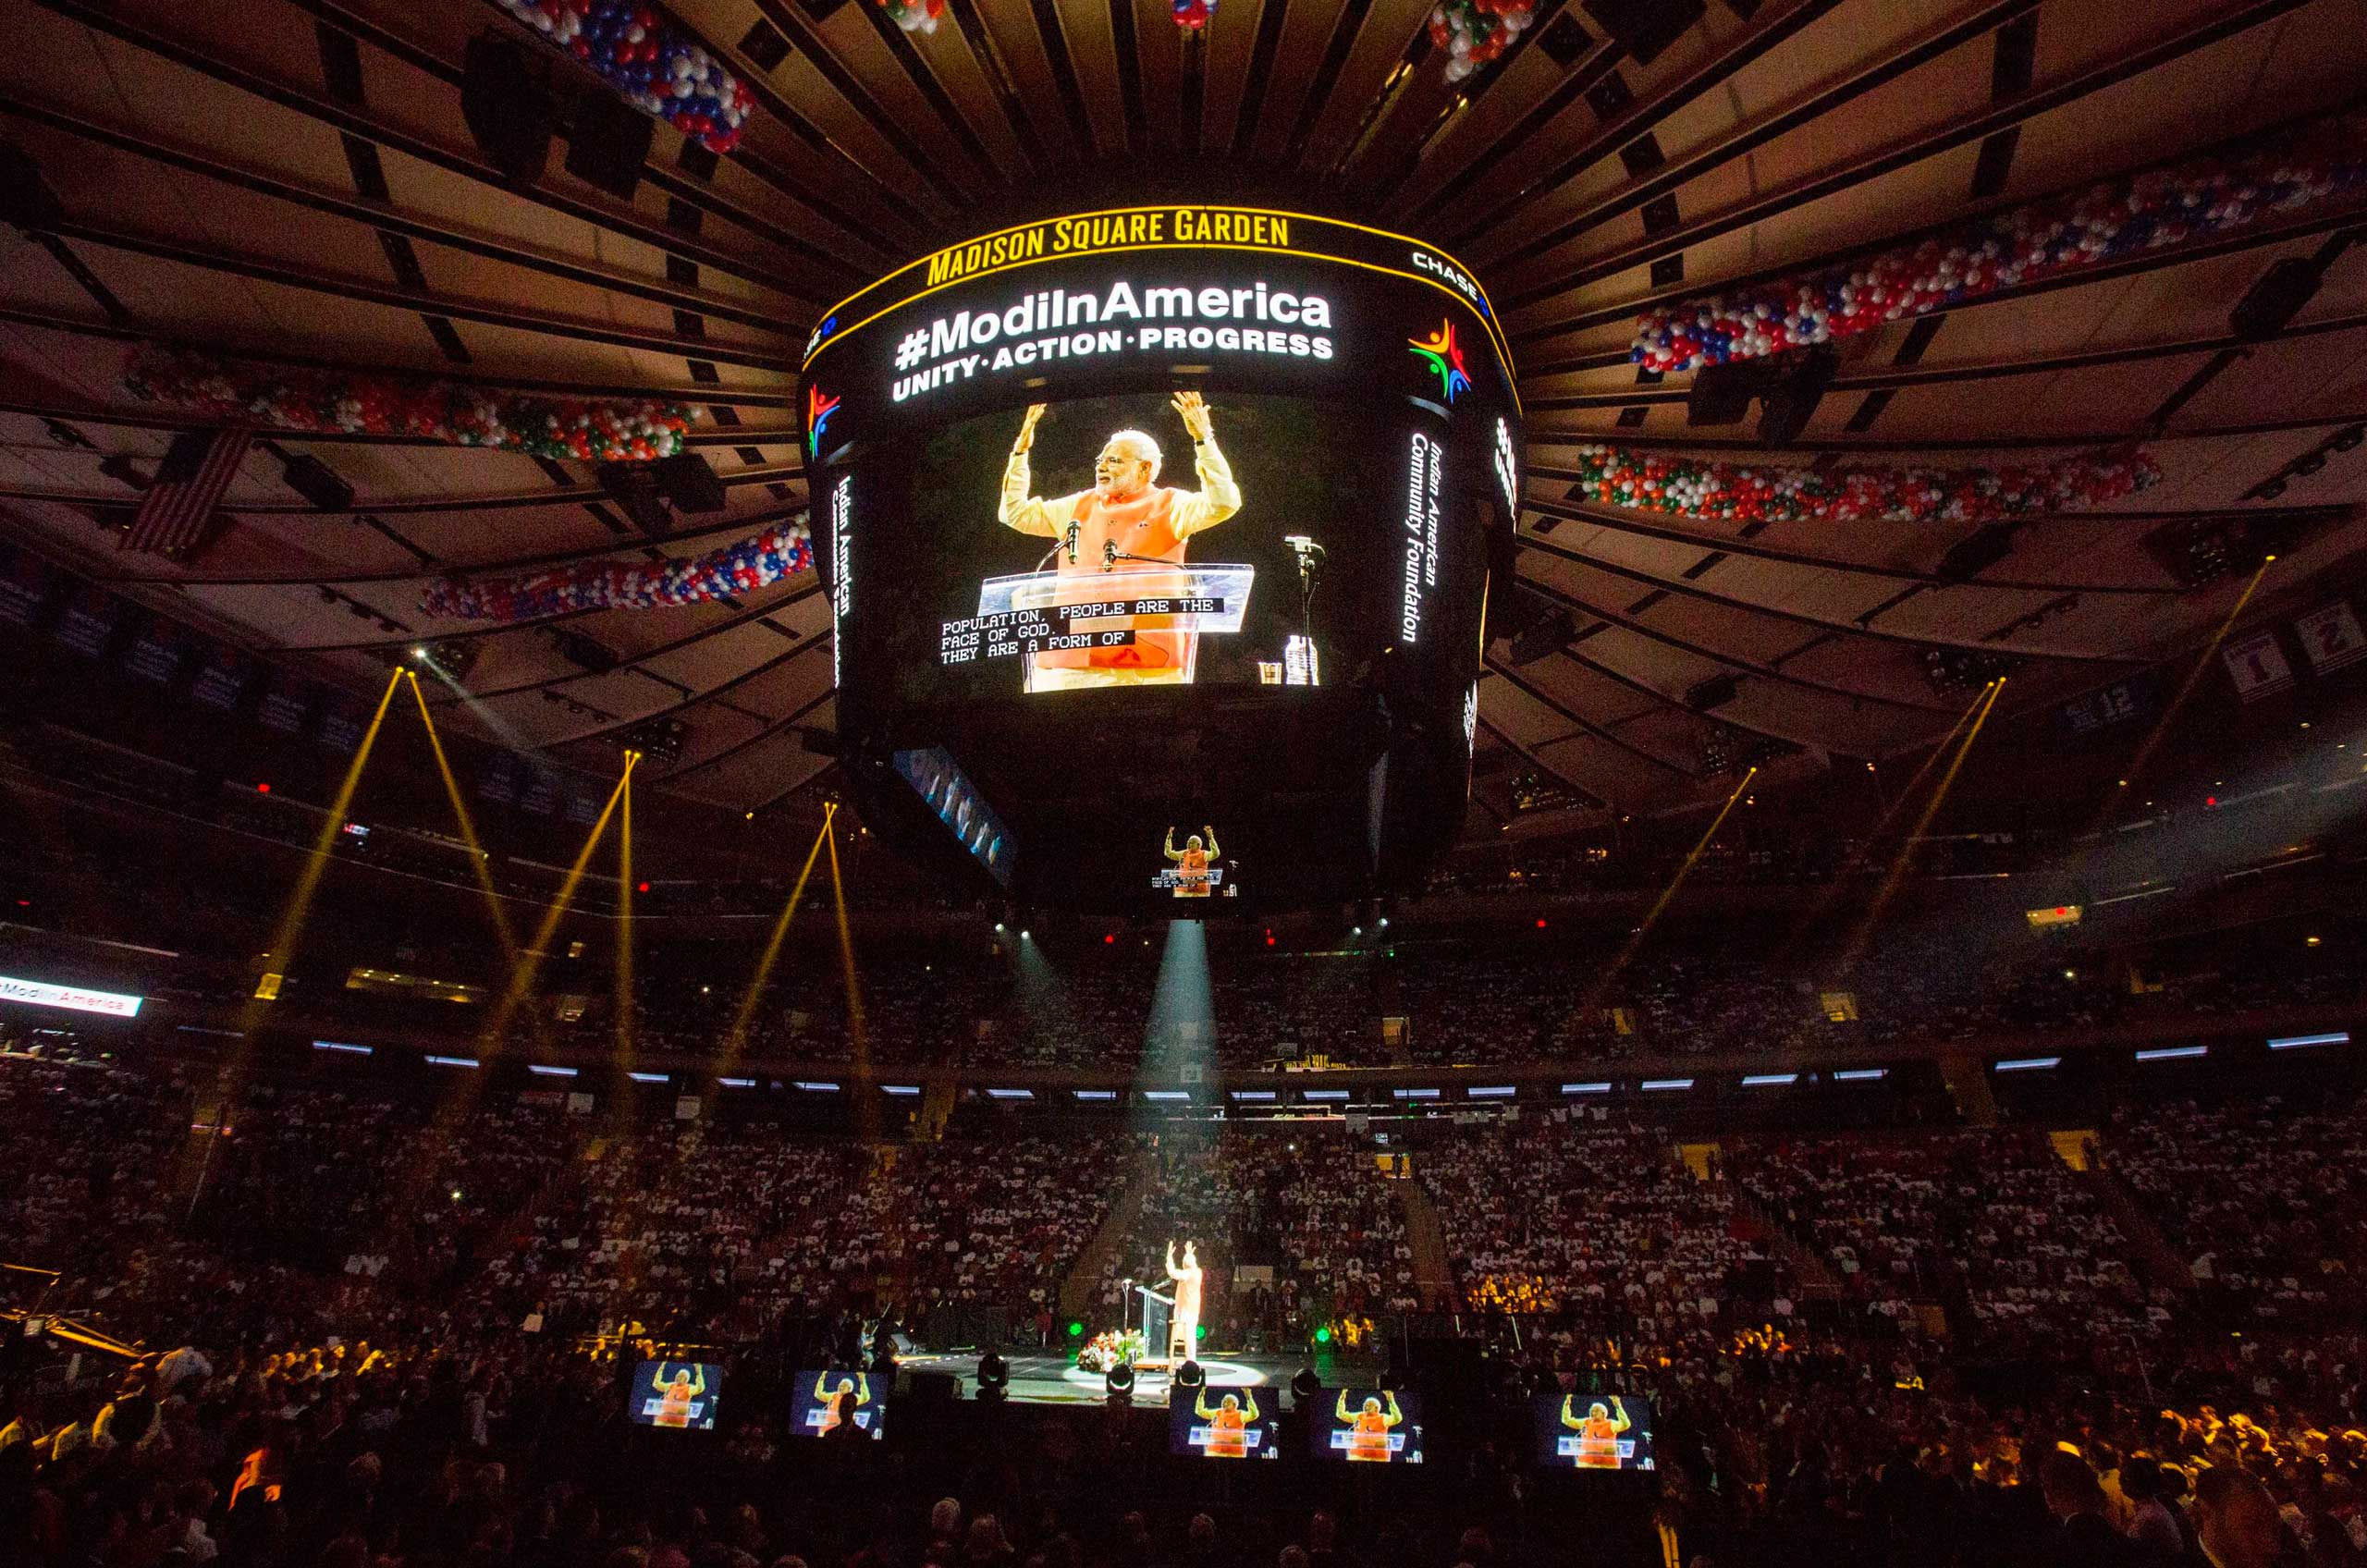 <b>2014:</b> India's Prime Minister Narendra Modi speaks at Madison Square Garden in New York City on his first visit to the US as Prime Minister, after his US visa had been revoked and reinstated.